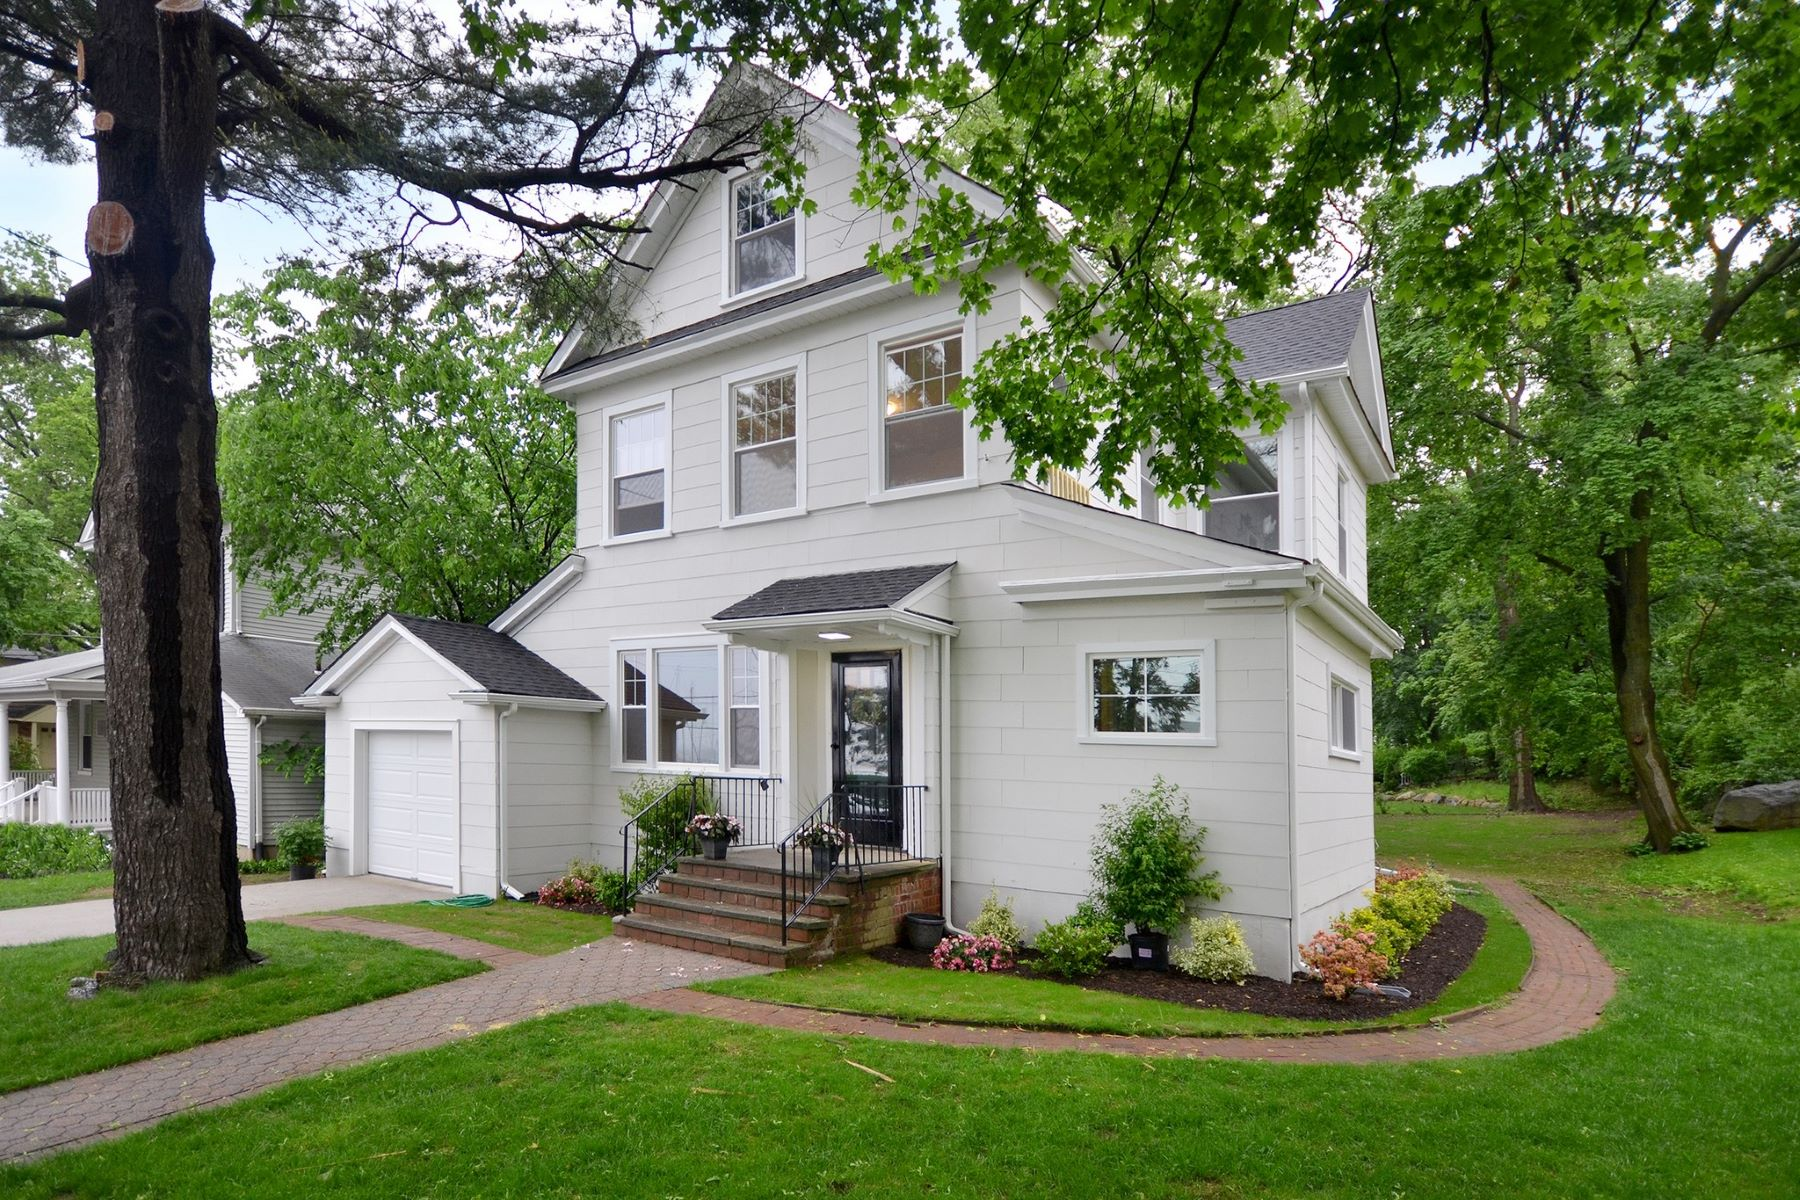 Single Family Home for Sale at 458 Main St , Port Washington, NY 11050 458 Main St, Port Washington, New York, 11050 United States